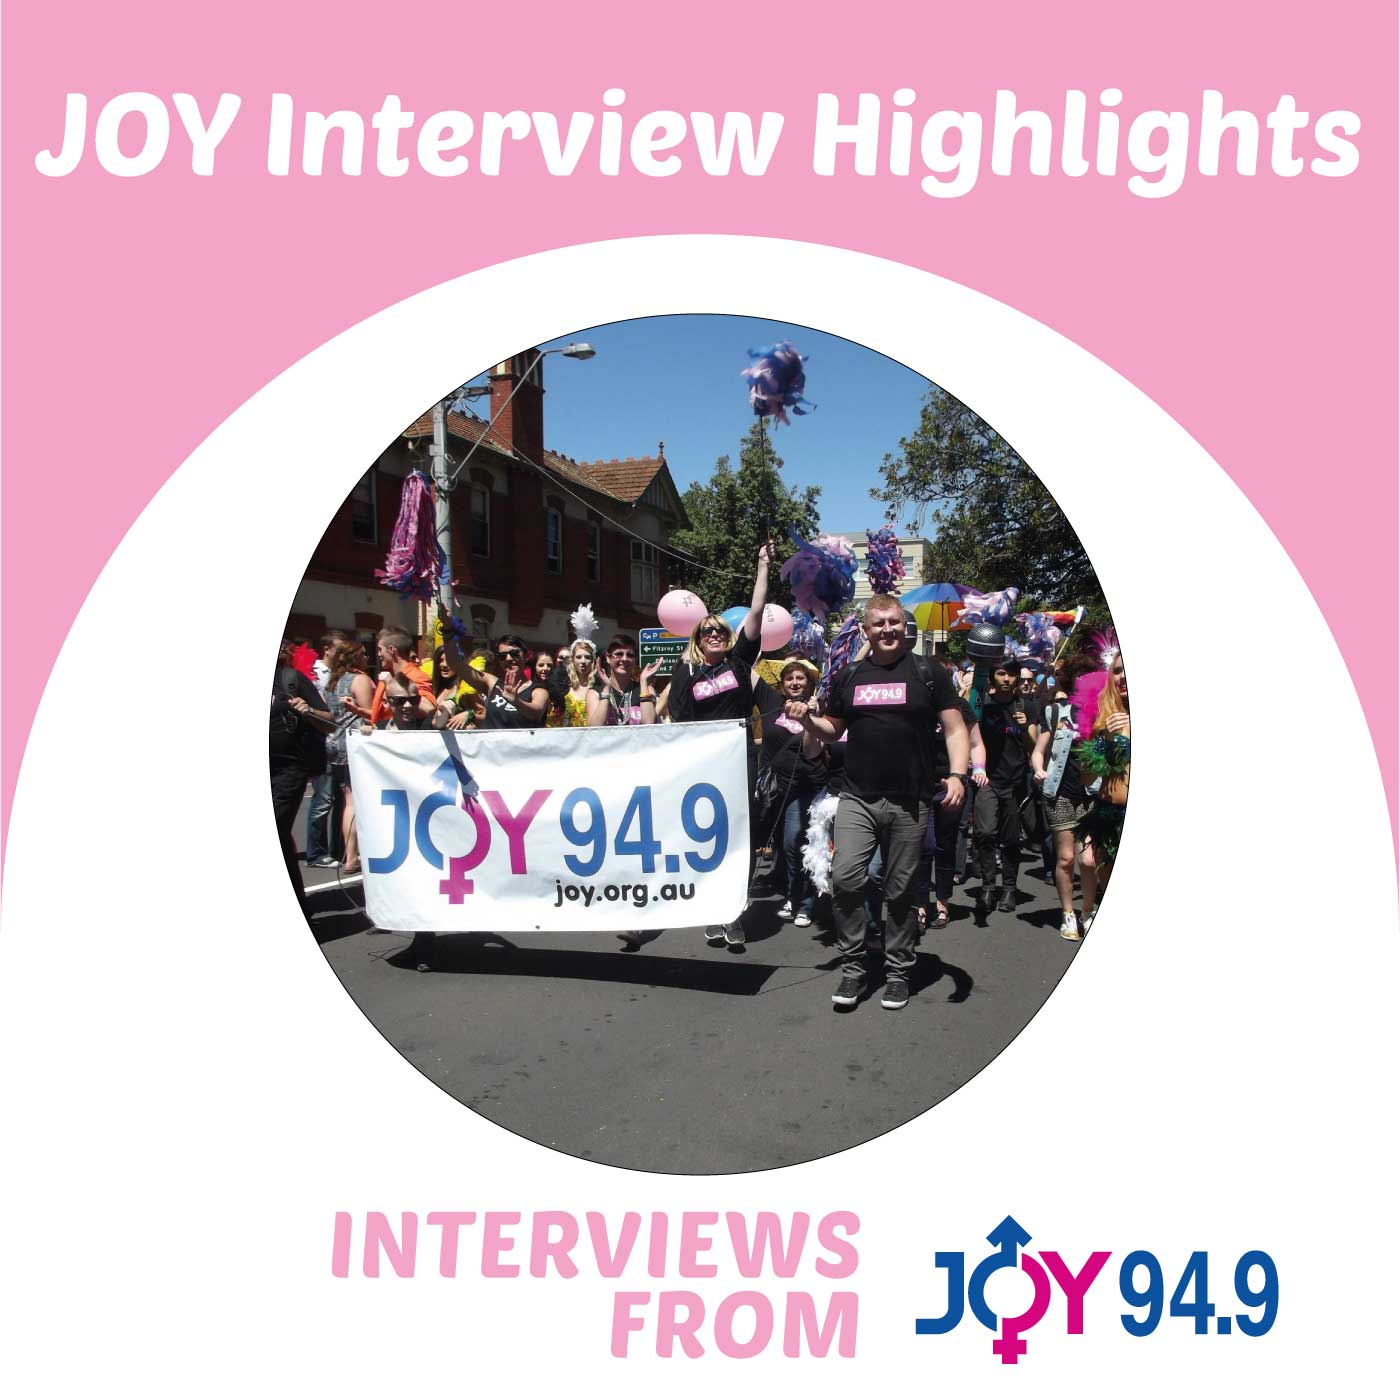 JOY Interview Highlights